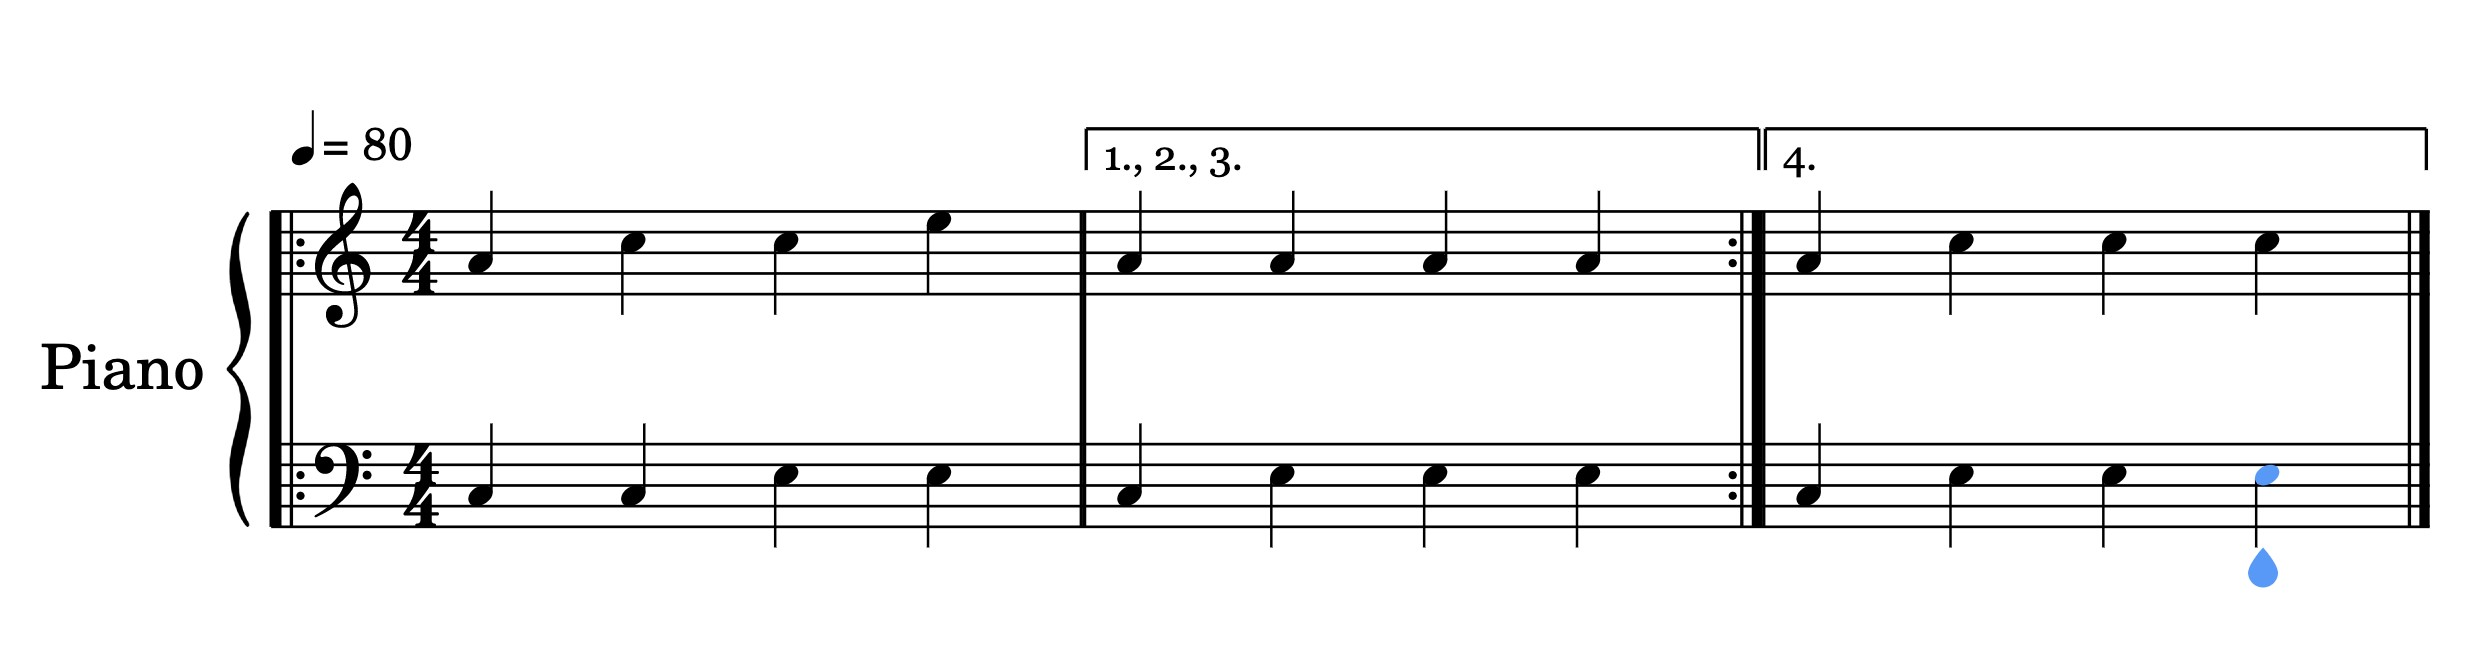 1st and 2nd time bars - Extending and Repeating Music - Jason Yang Pianist